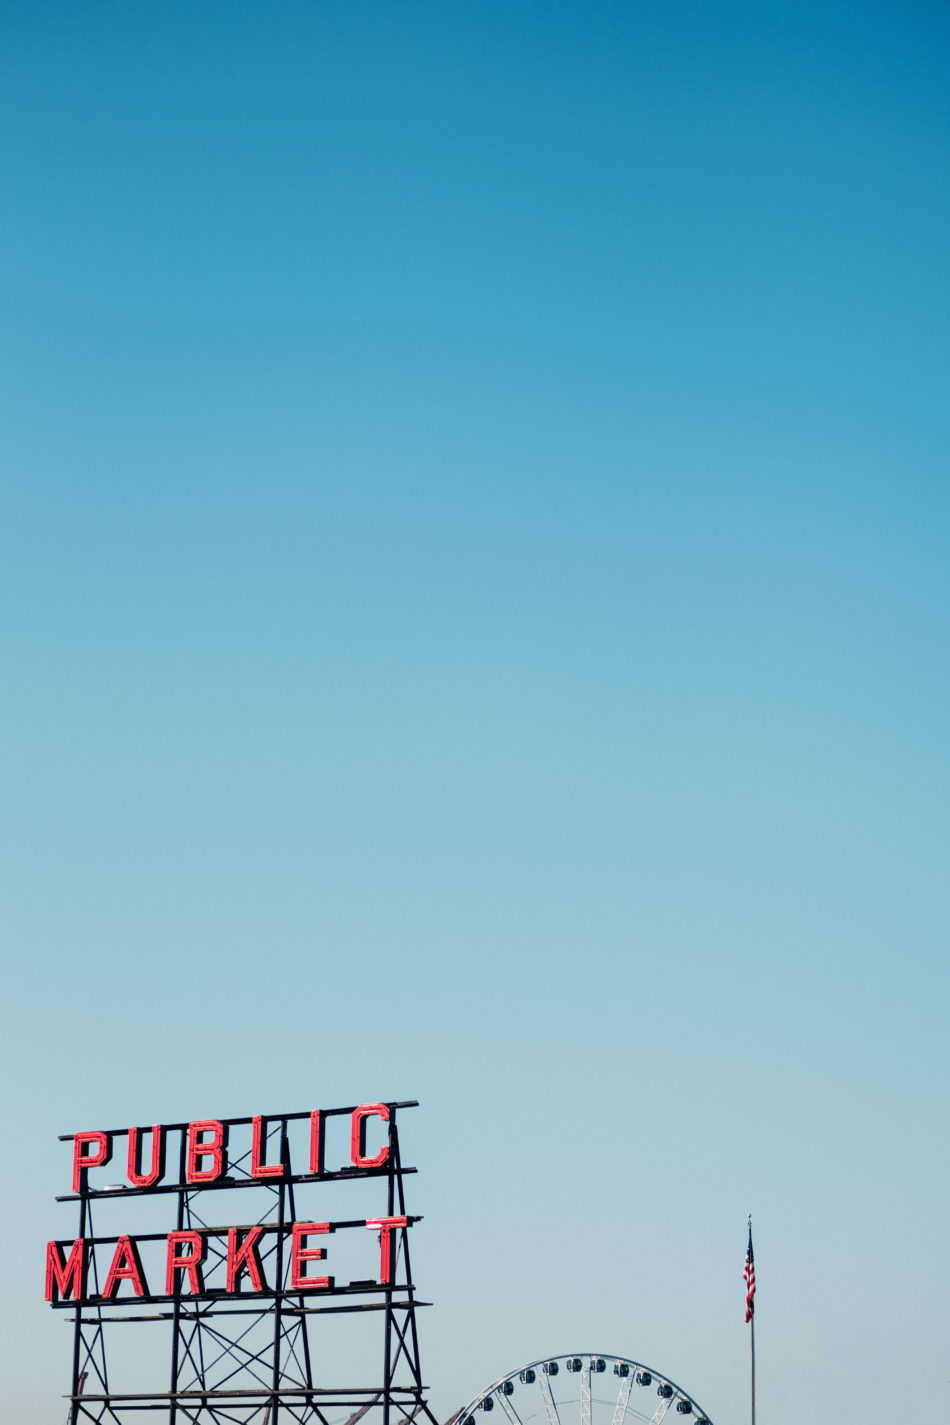 10 Places I Want to Travel After COVID-19 | Places to Travel after Lockdown is Over | Travel Aesthetic | Seattle Washington Pike Place Public Market